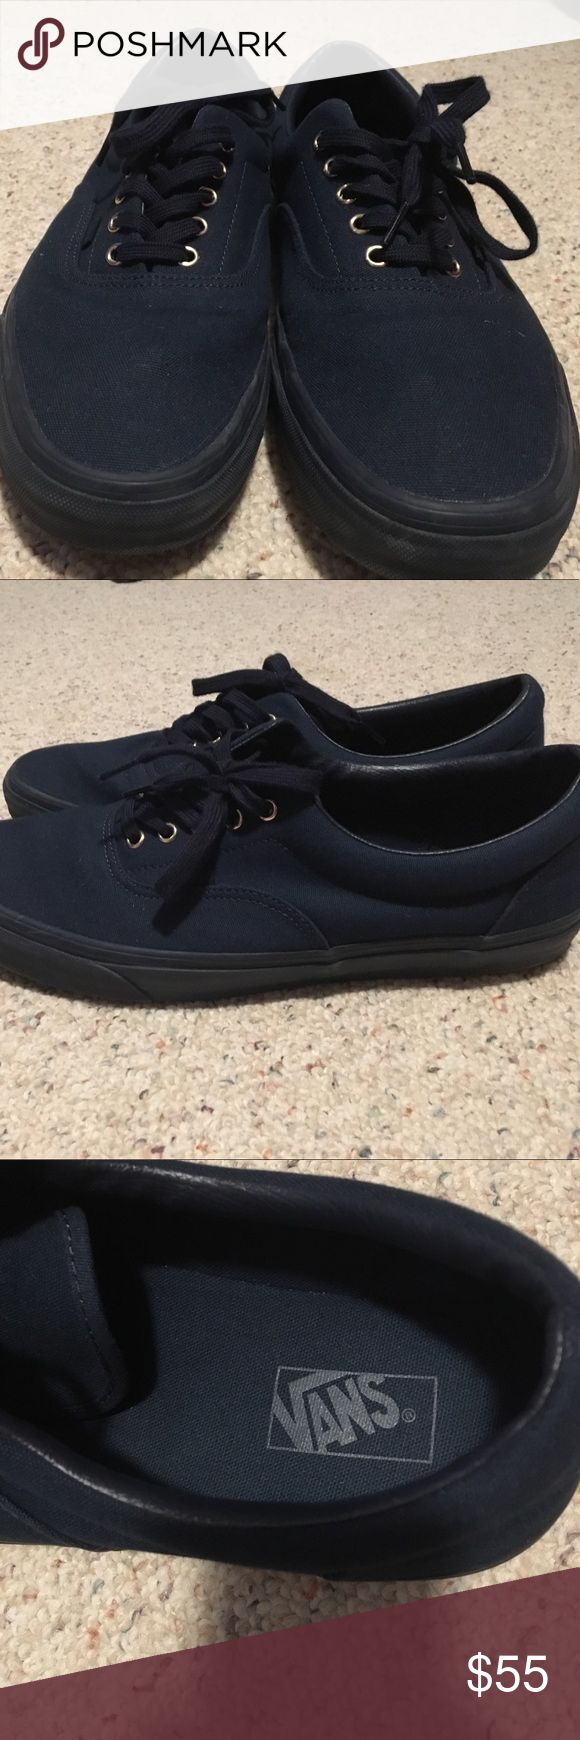 Men's vans size 13 Men's vans size 13, worn once inside my home mint condition need gone will accept anything reasonable Vans Shoes Sneakers